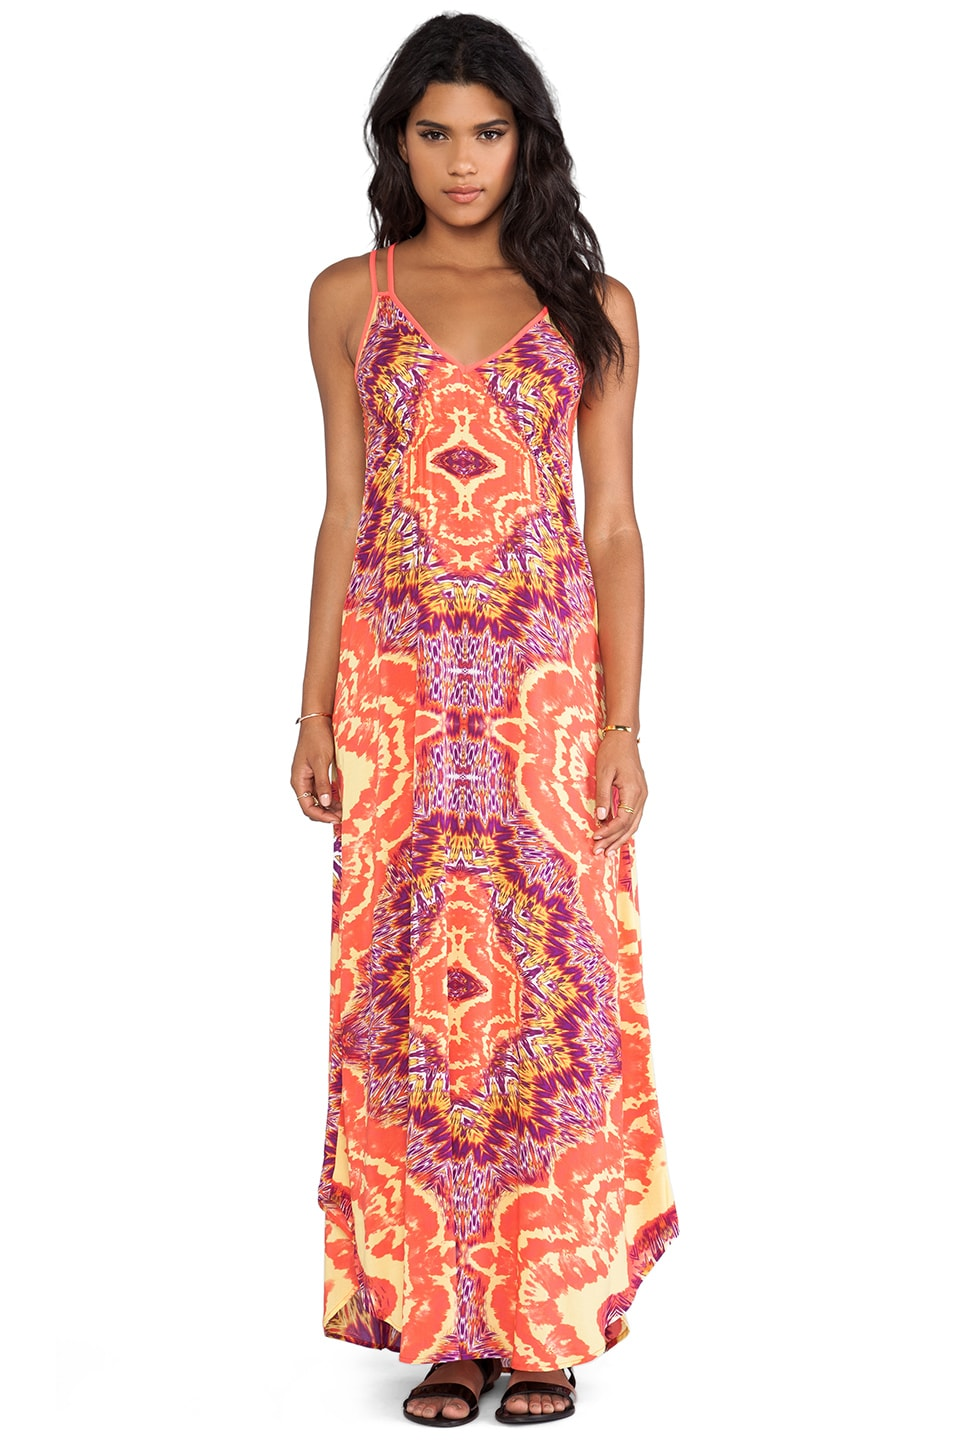 Eight Sixty Grateful Dead Maxi Dress in Yellow & Orange